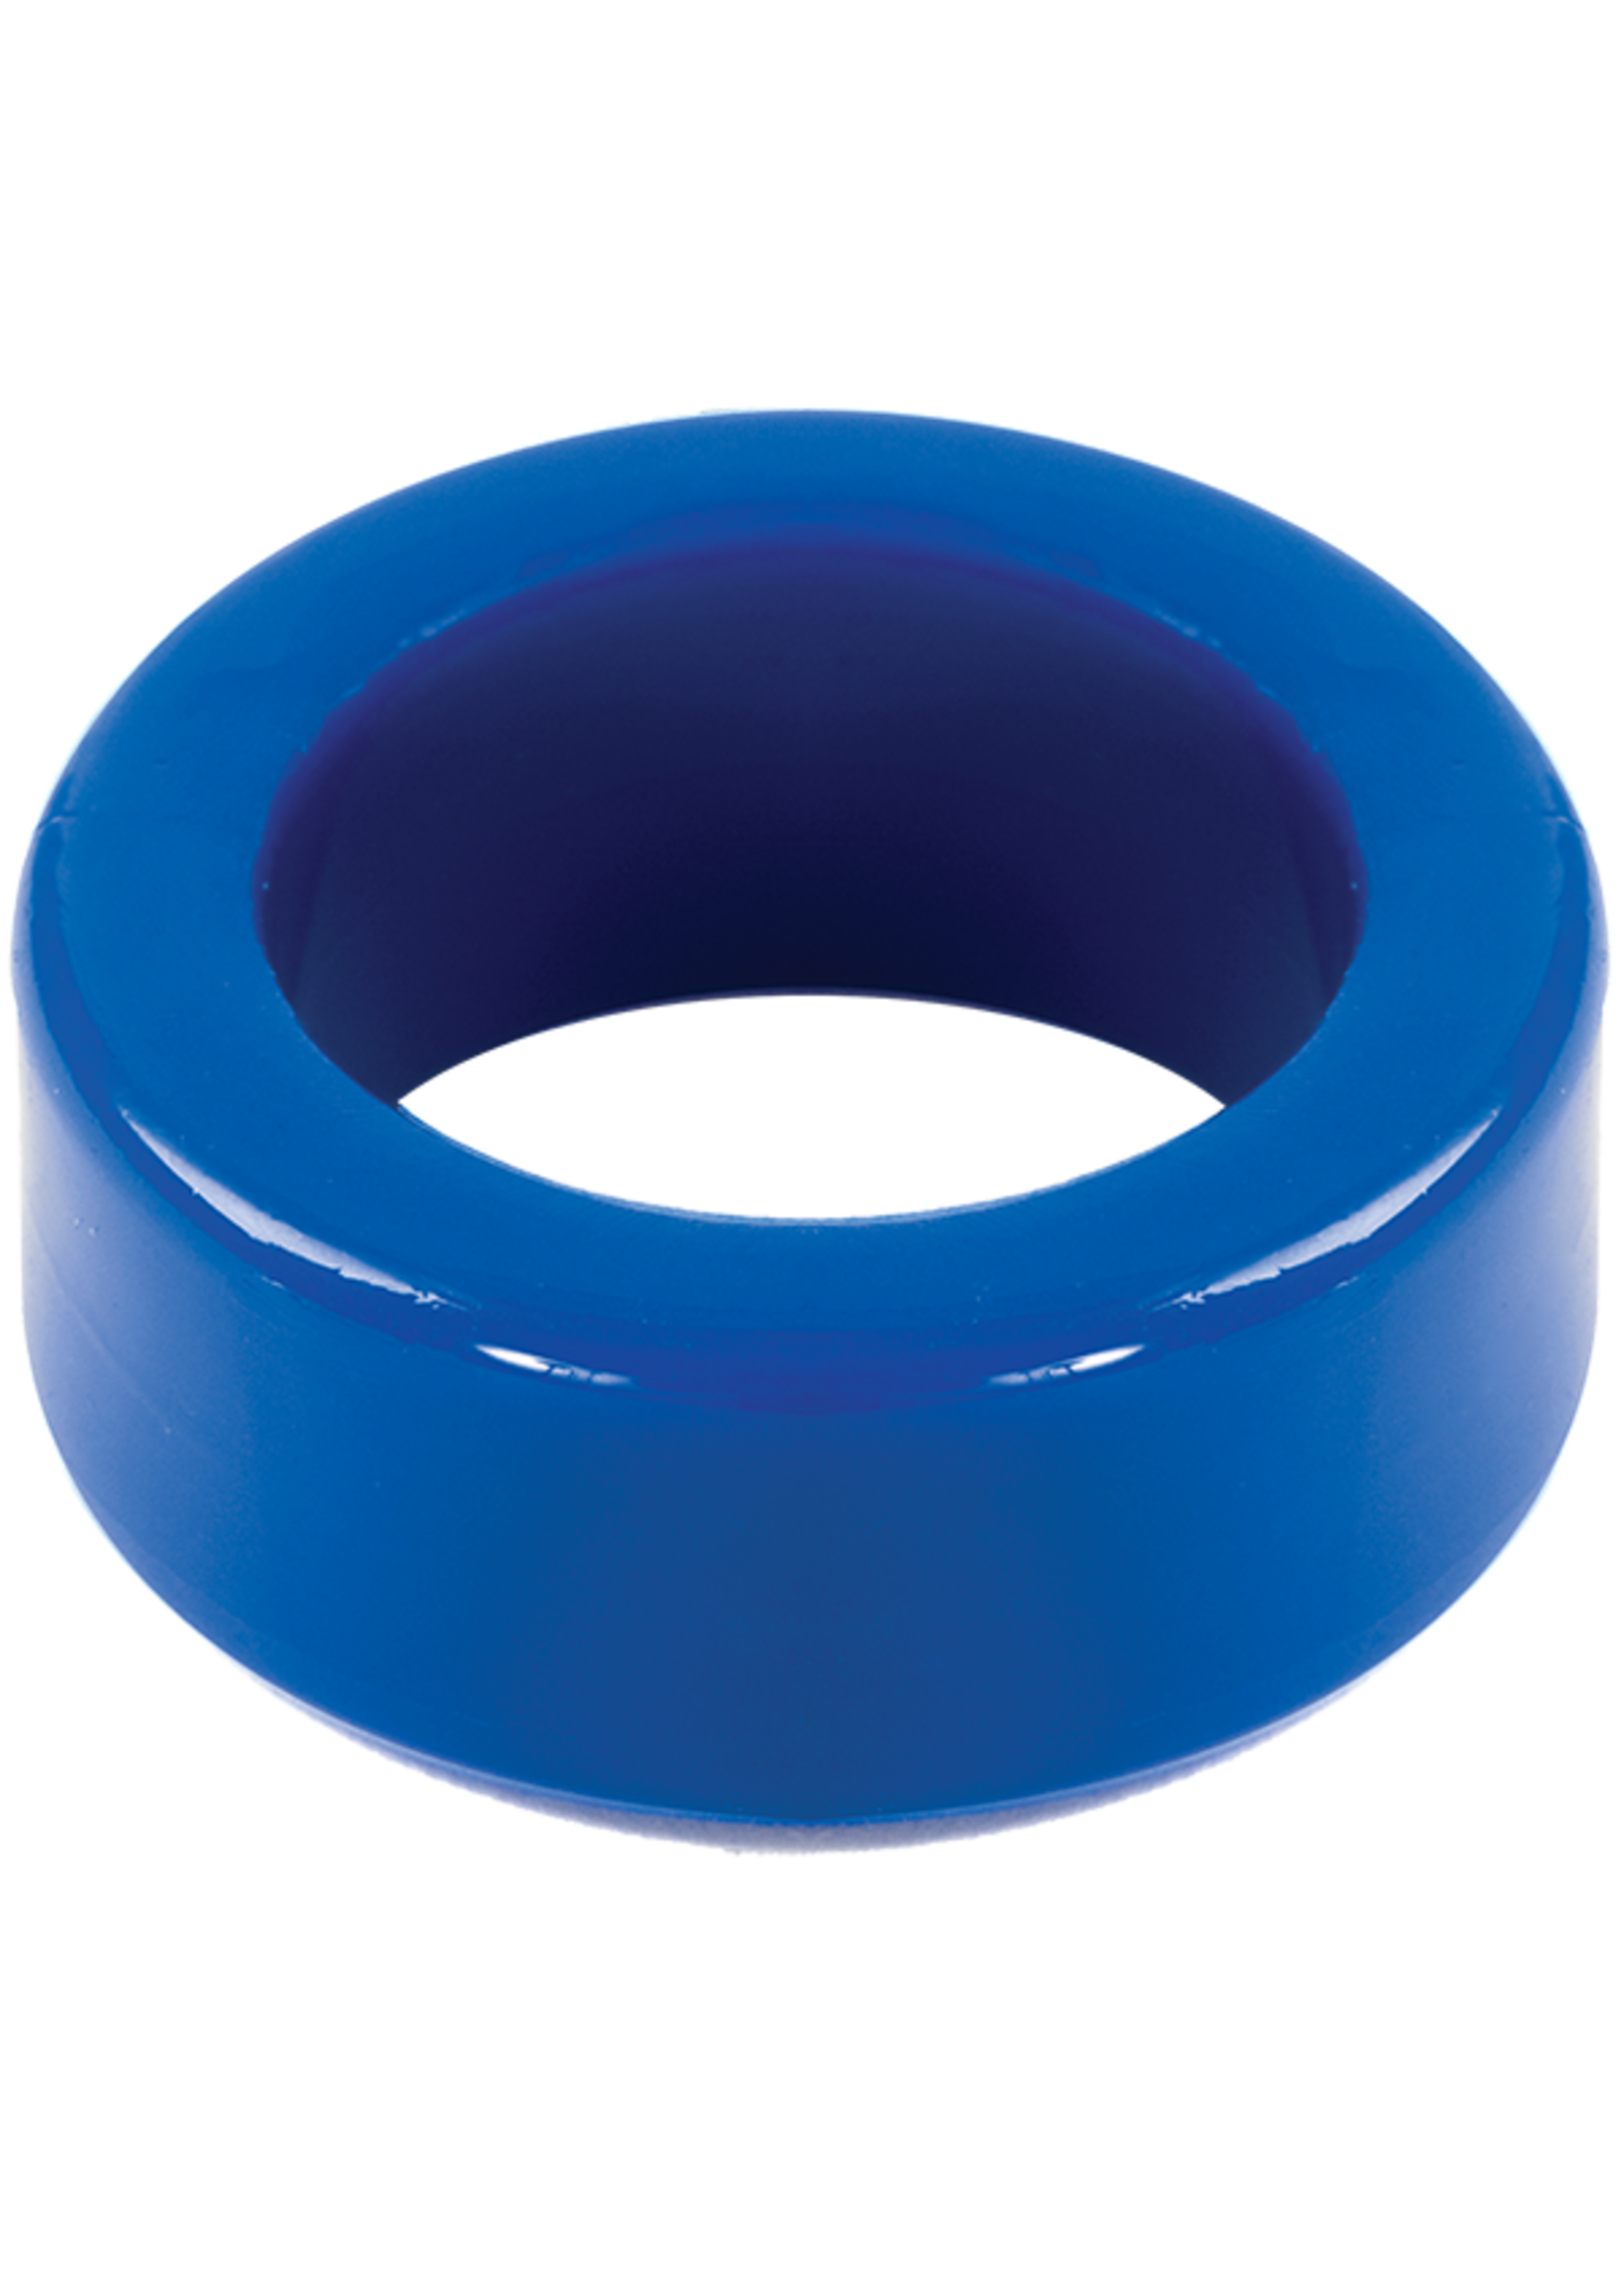 Doc Johnson TitanMen Tools- Stretch to Fit C-Ring- Blue